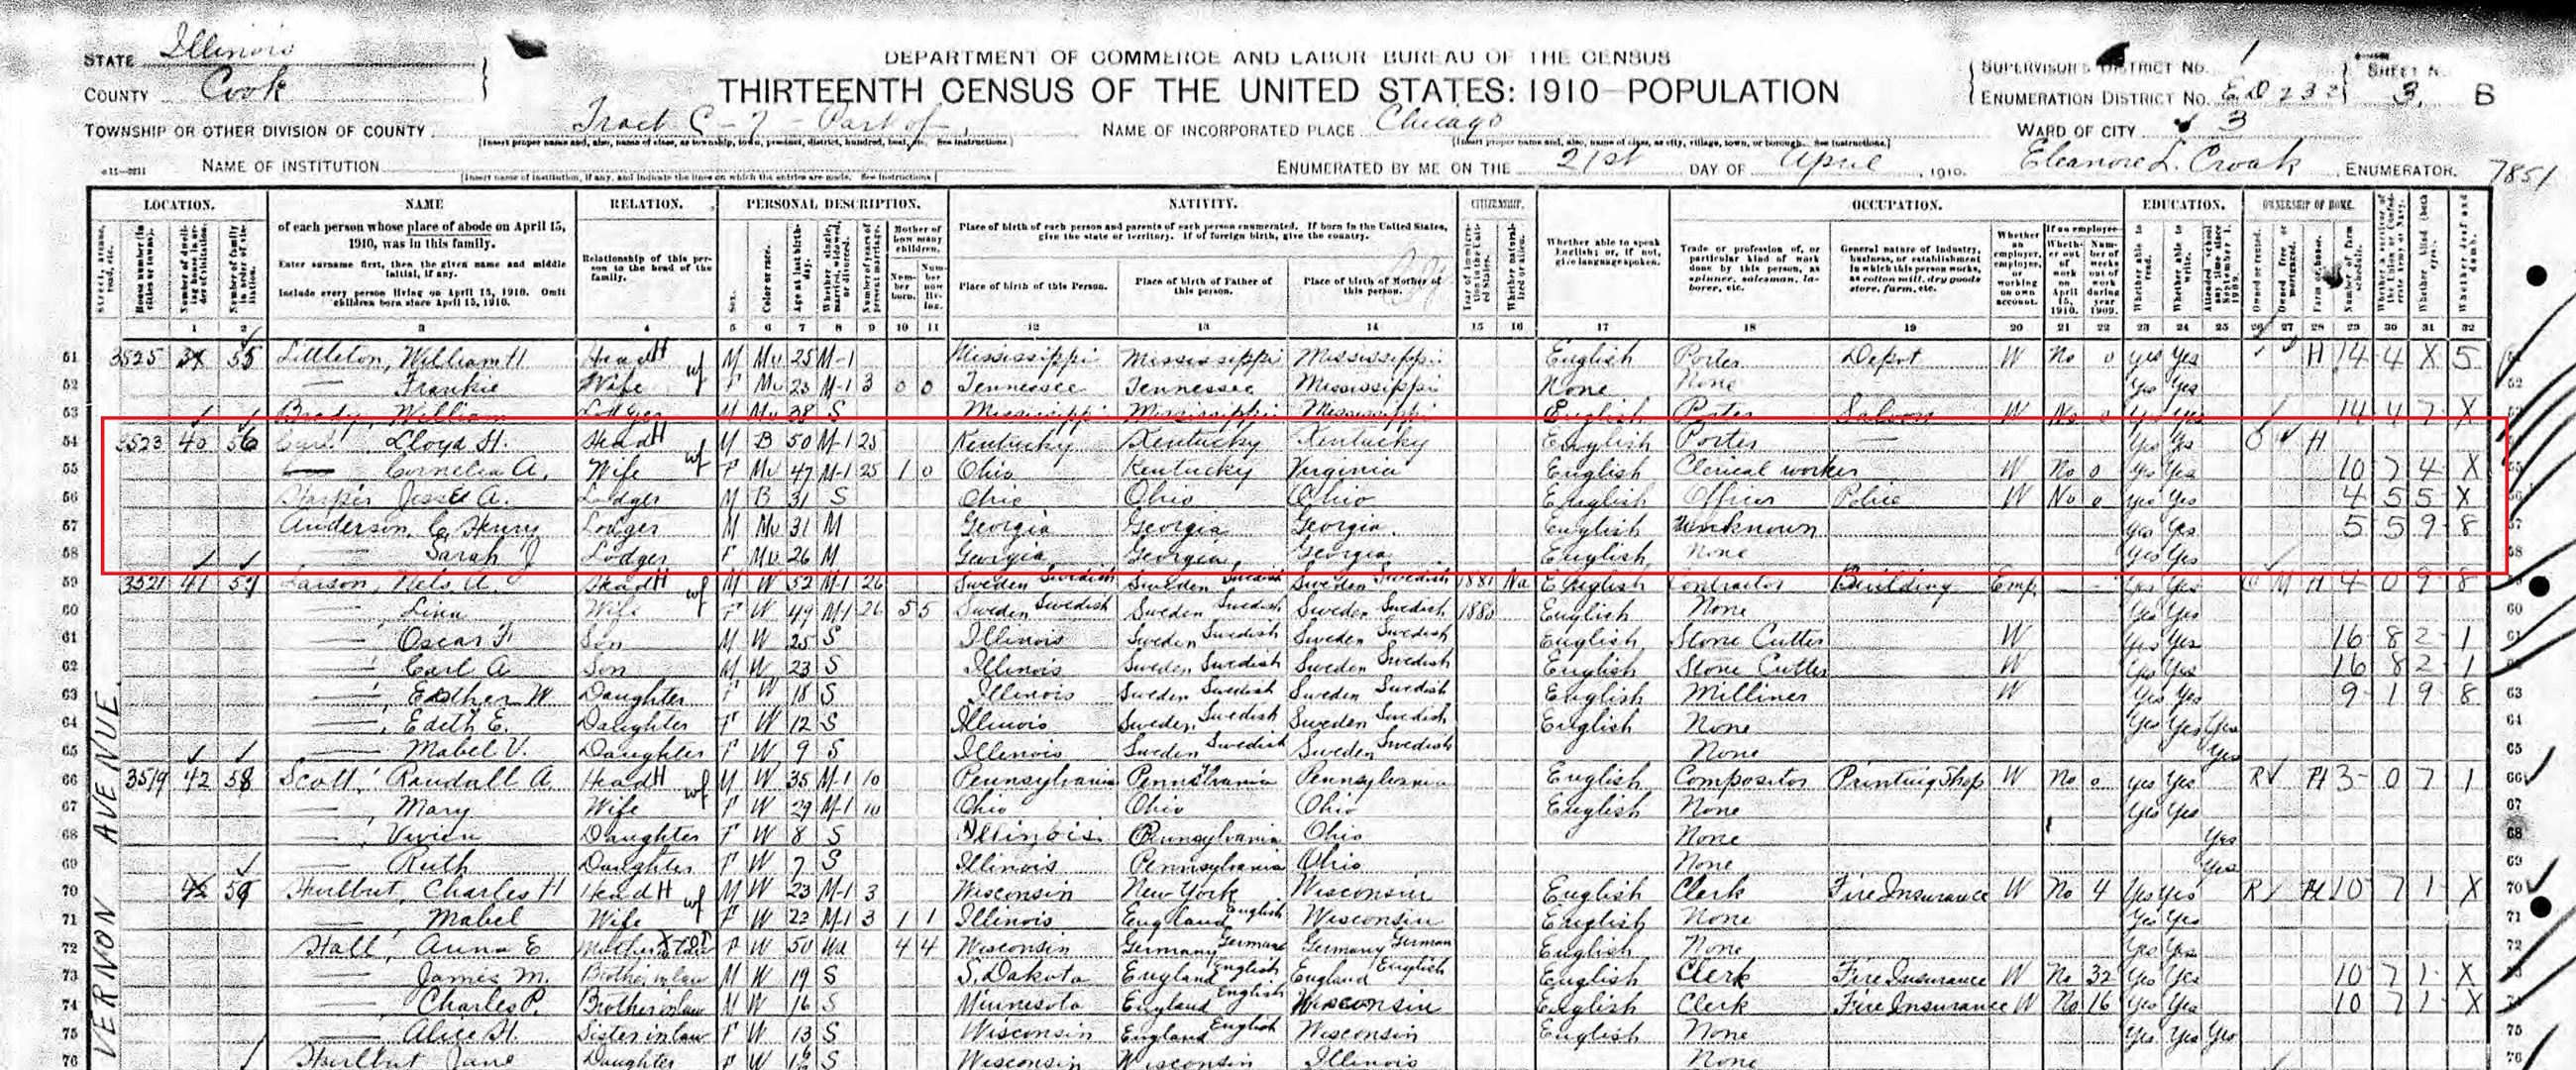 Fig 8. 1910 U.S. Census with Curl family outlined in red (JPG)